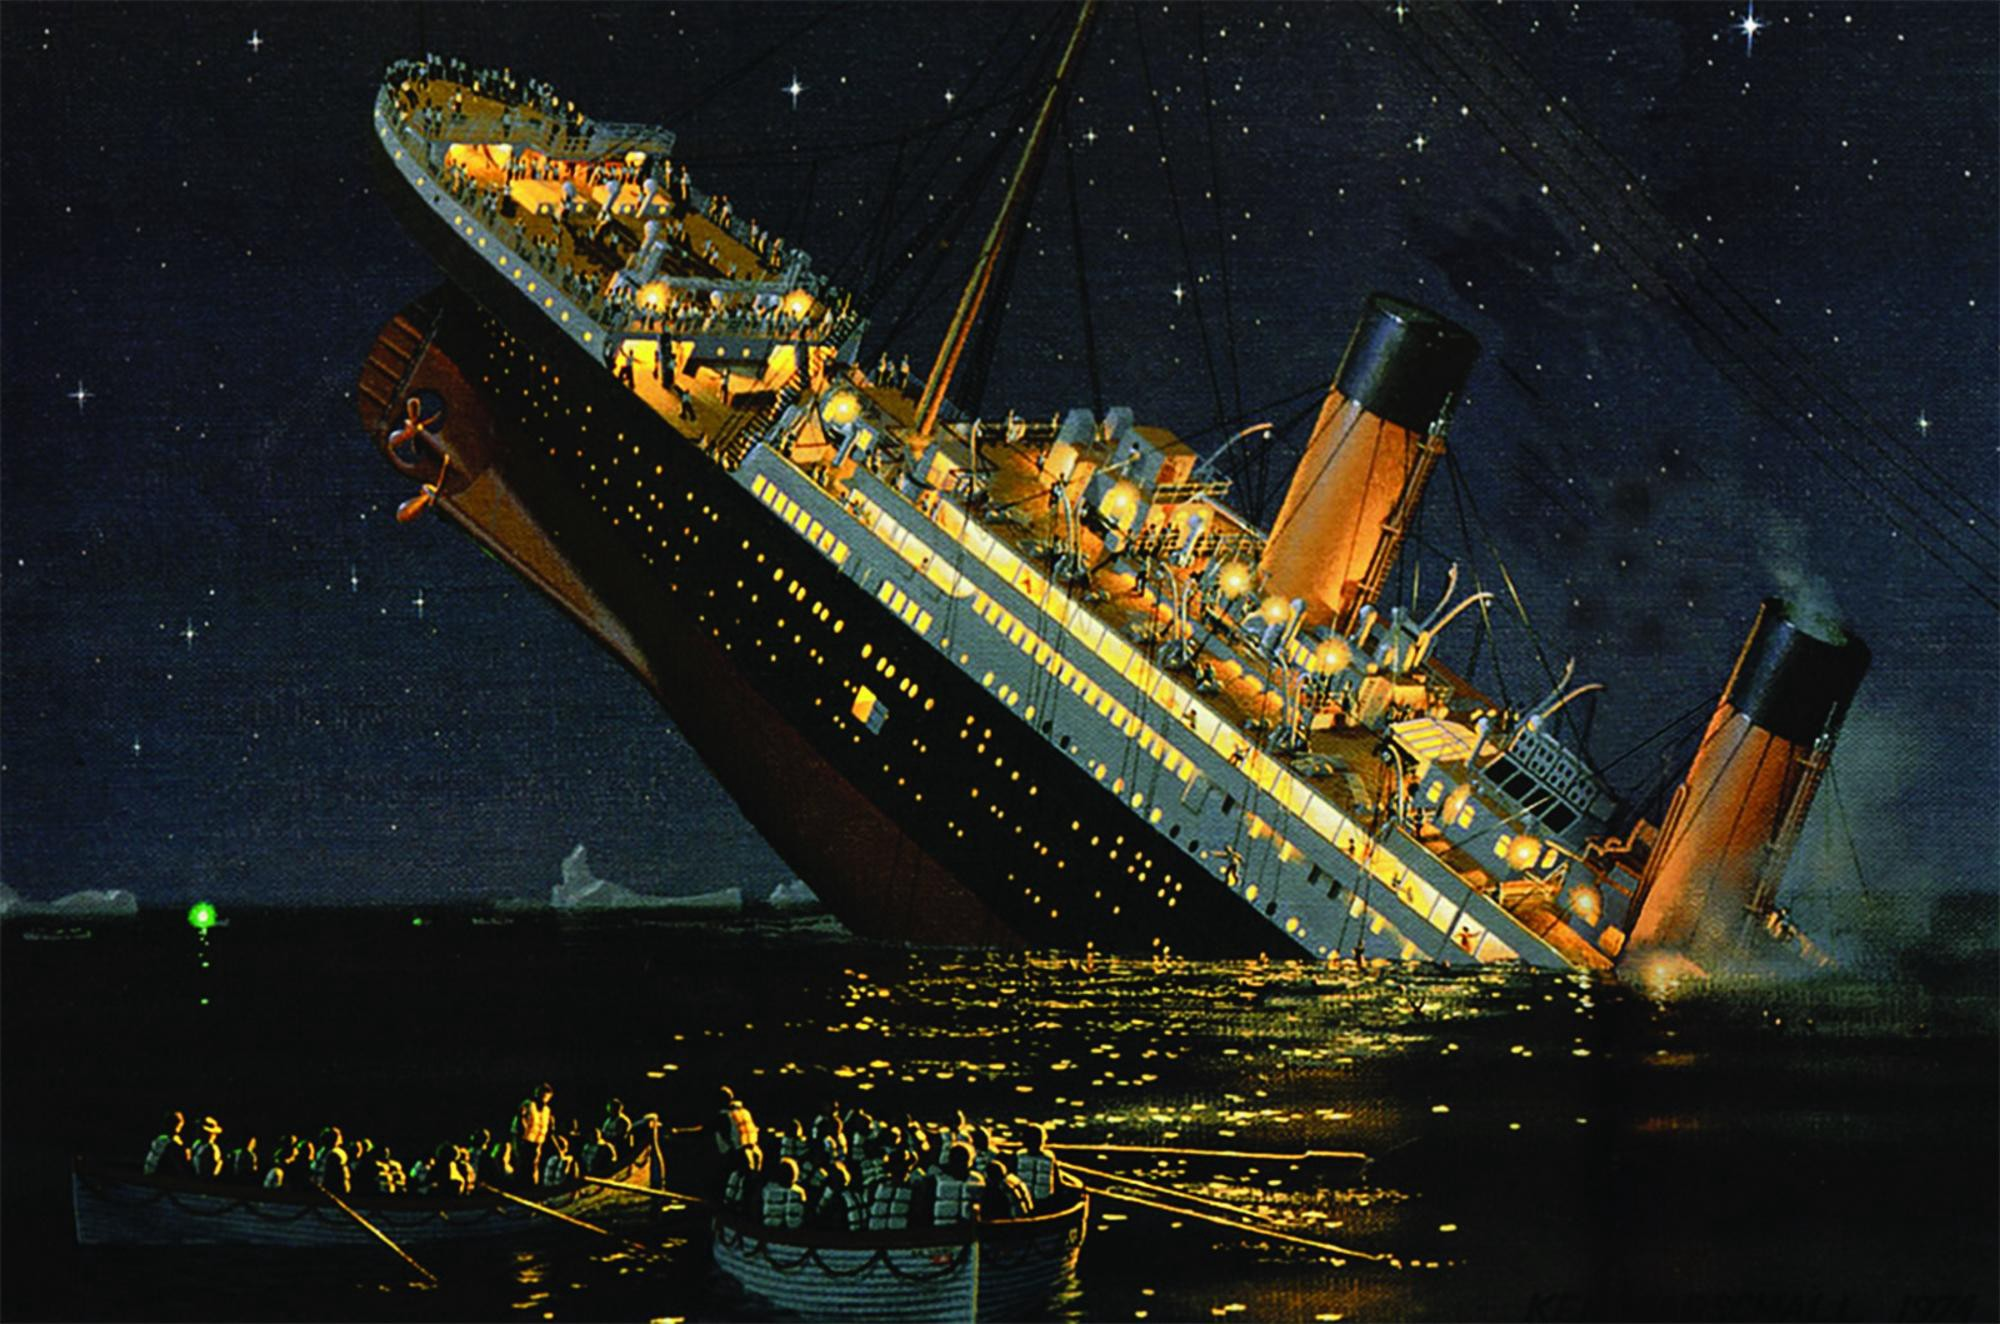 Who was at fault during the Titanic sinking? | by Arnav B | Medium